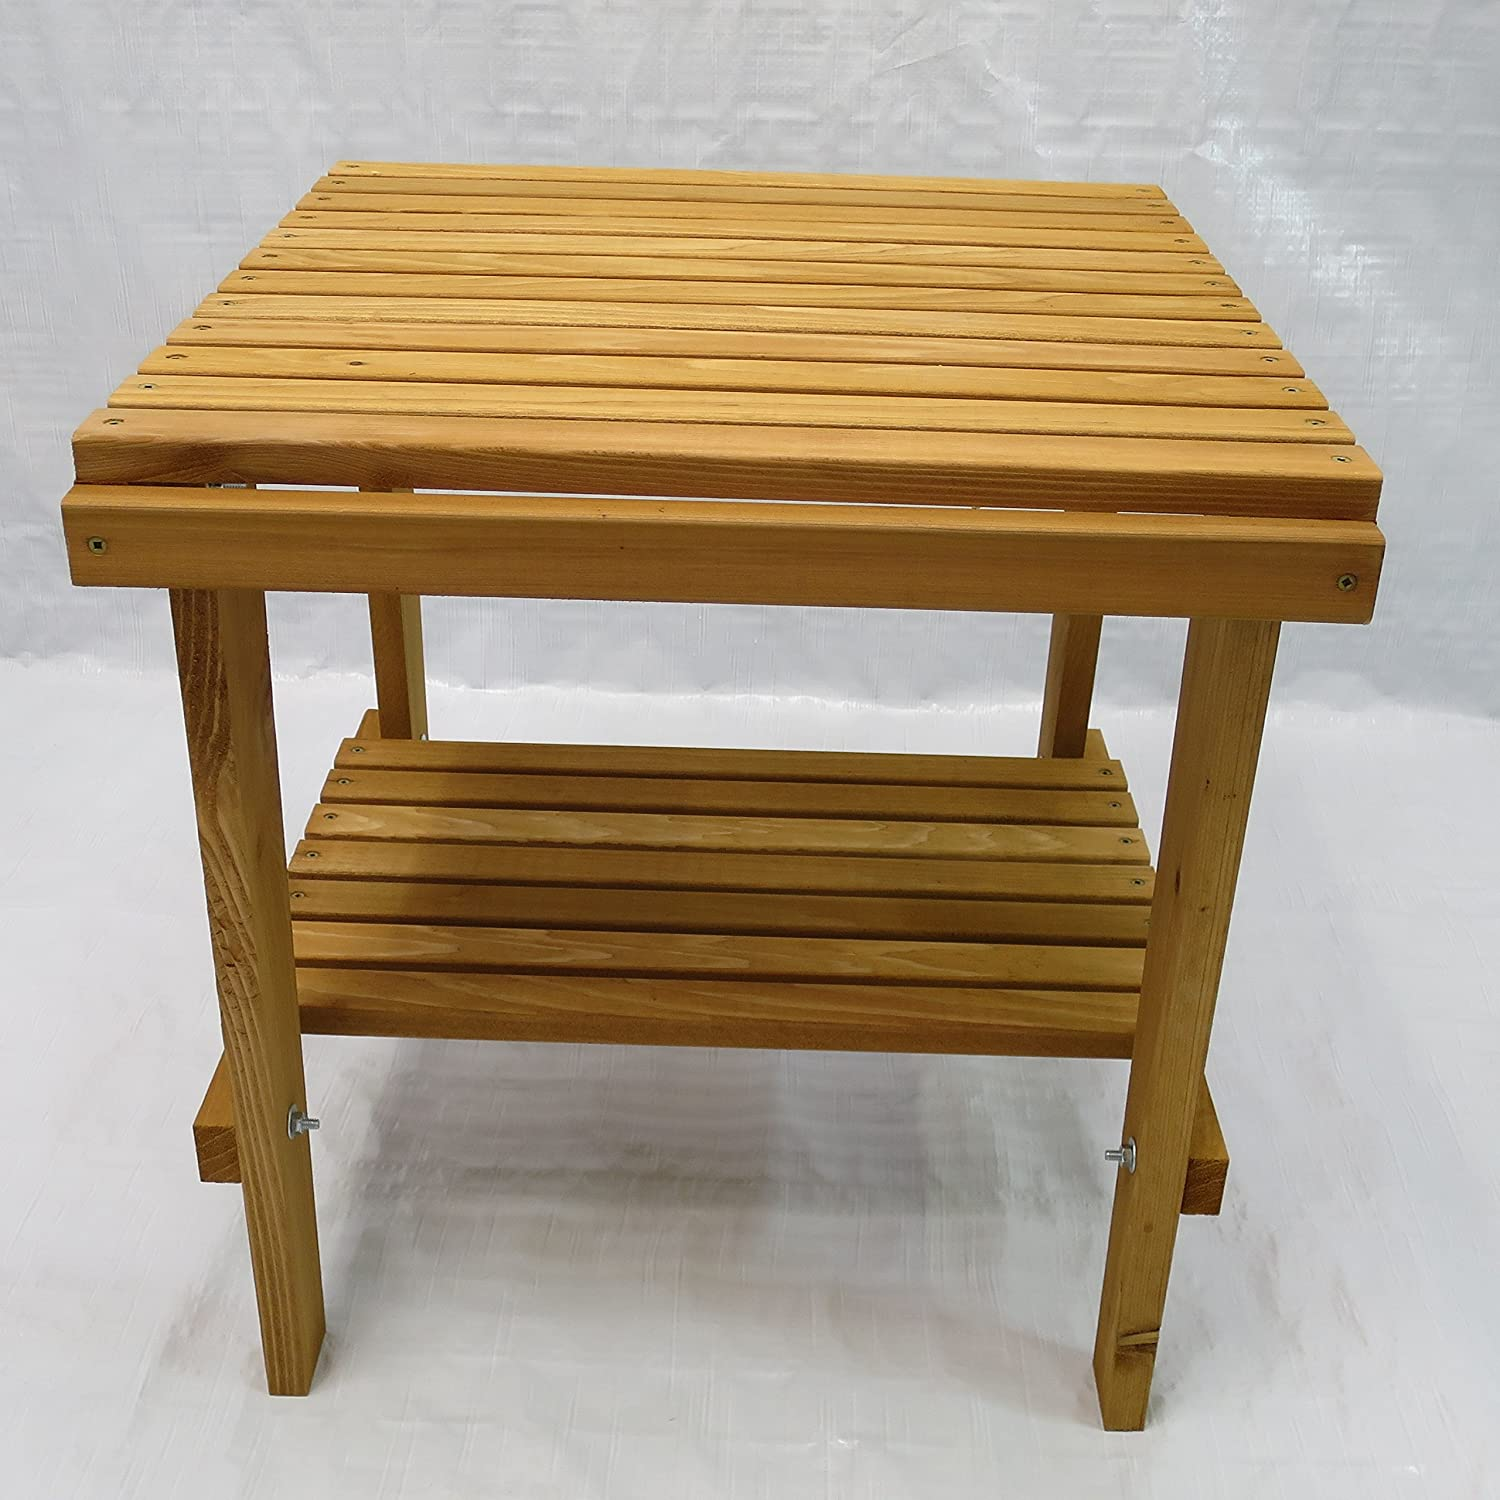 Cedar Side Table with Shelf Stained Finish, Amish Crafted